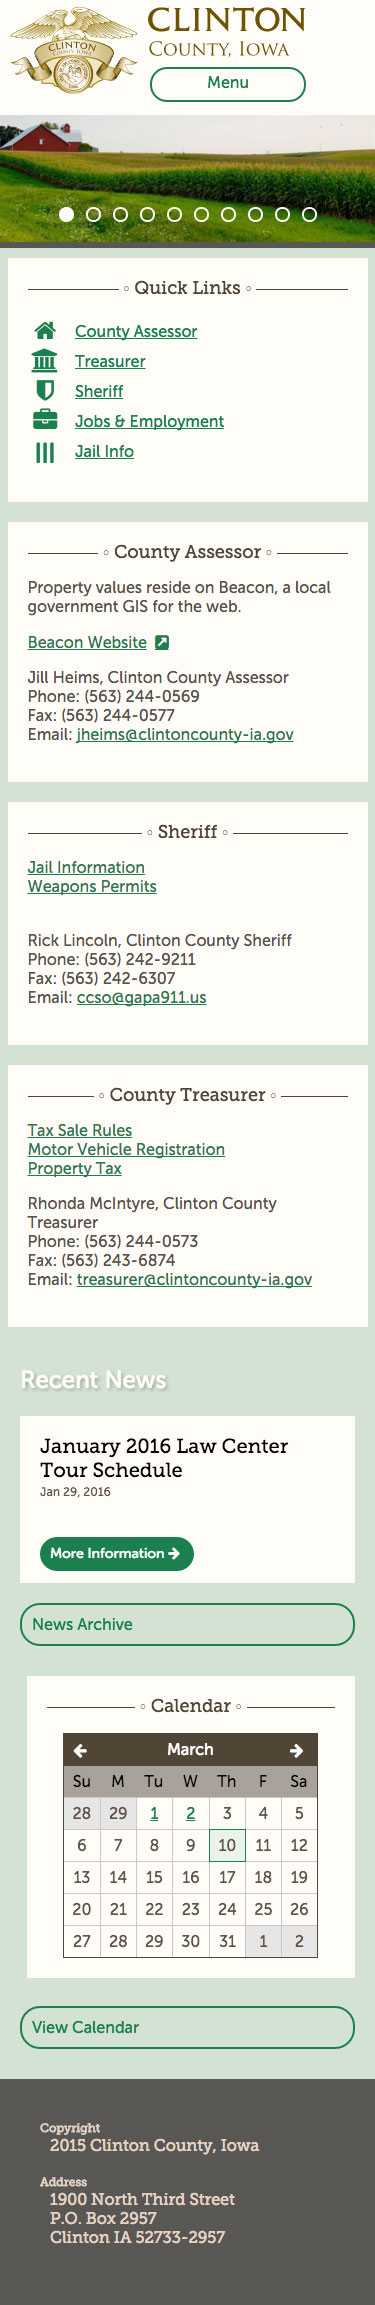 Clinton County mobile home page screenshot